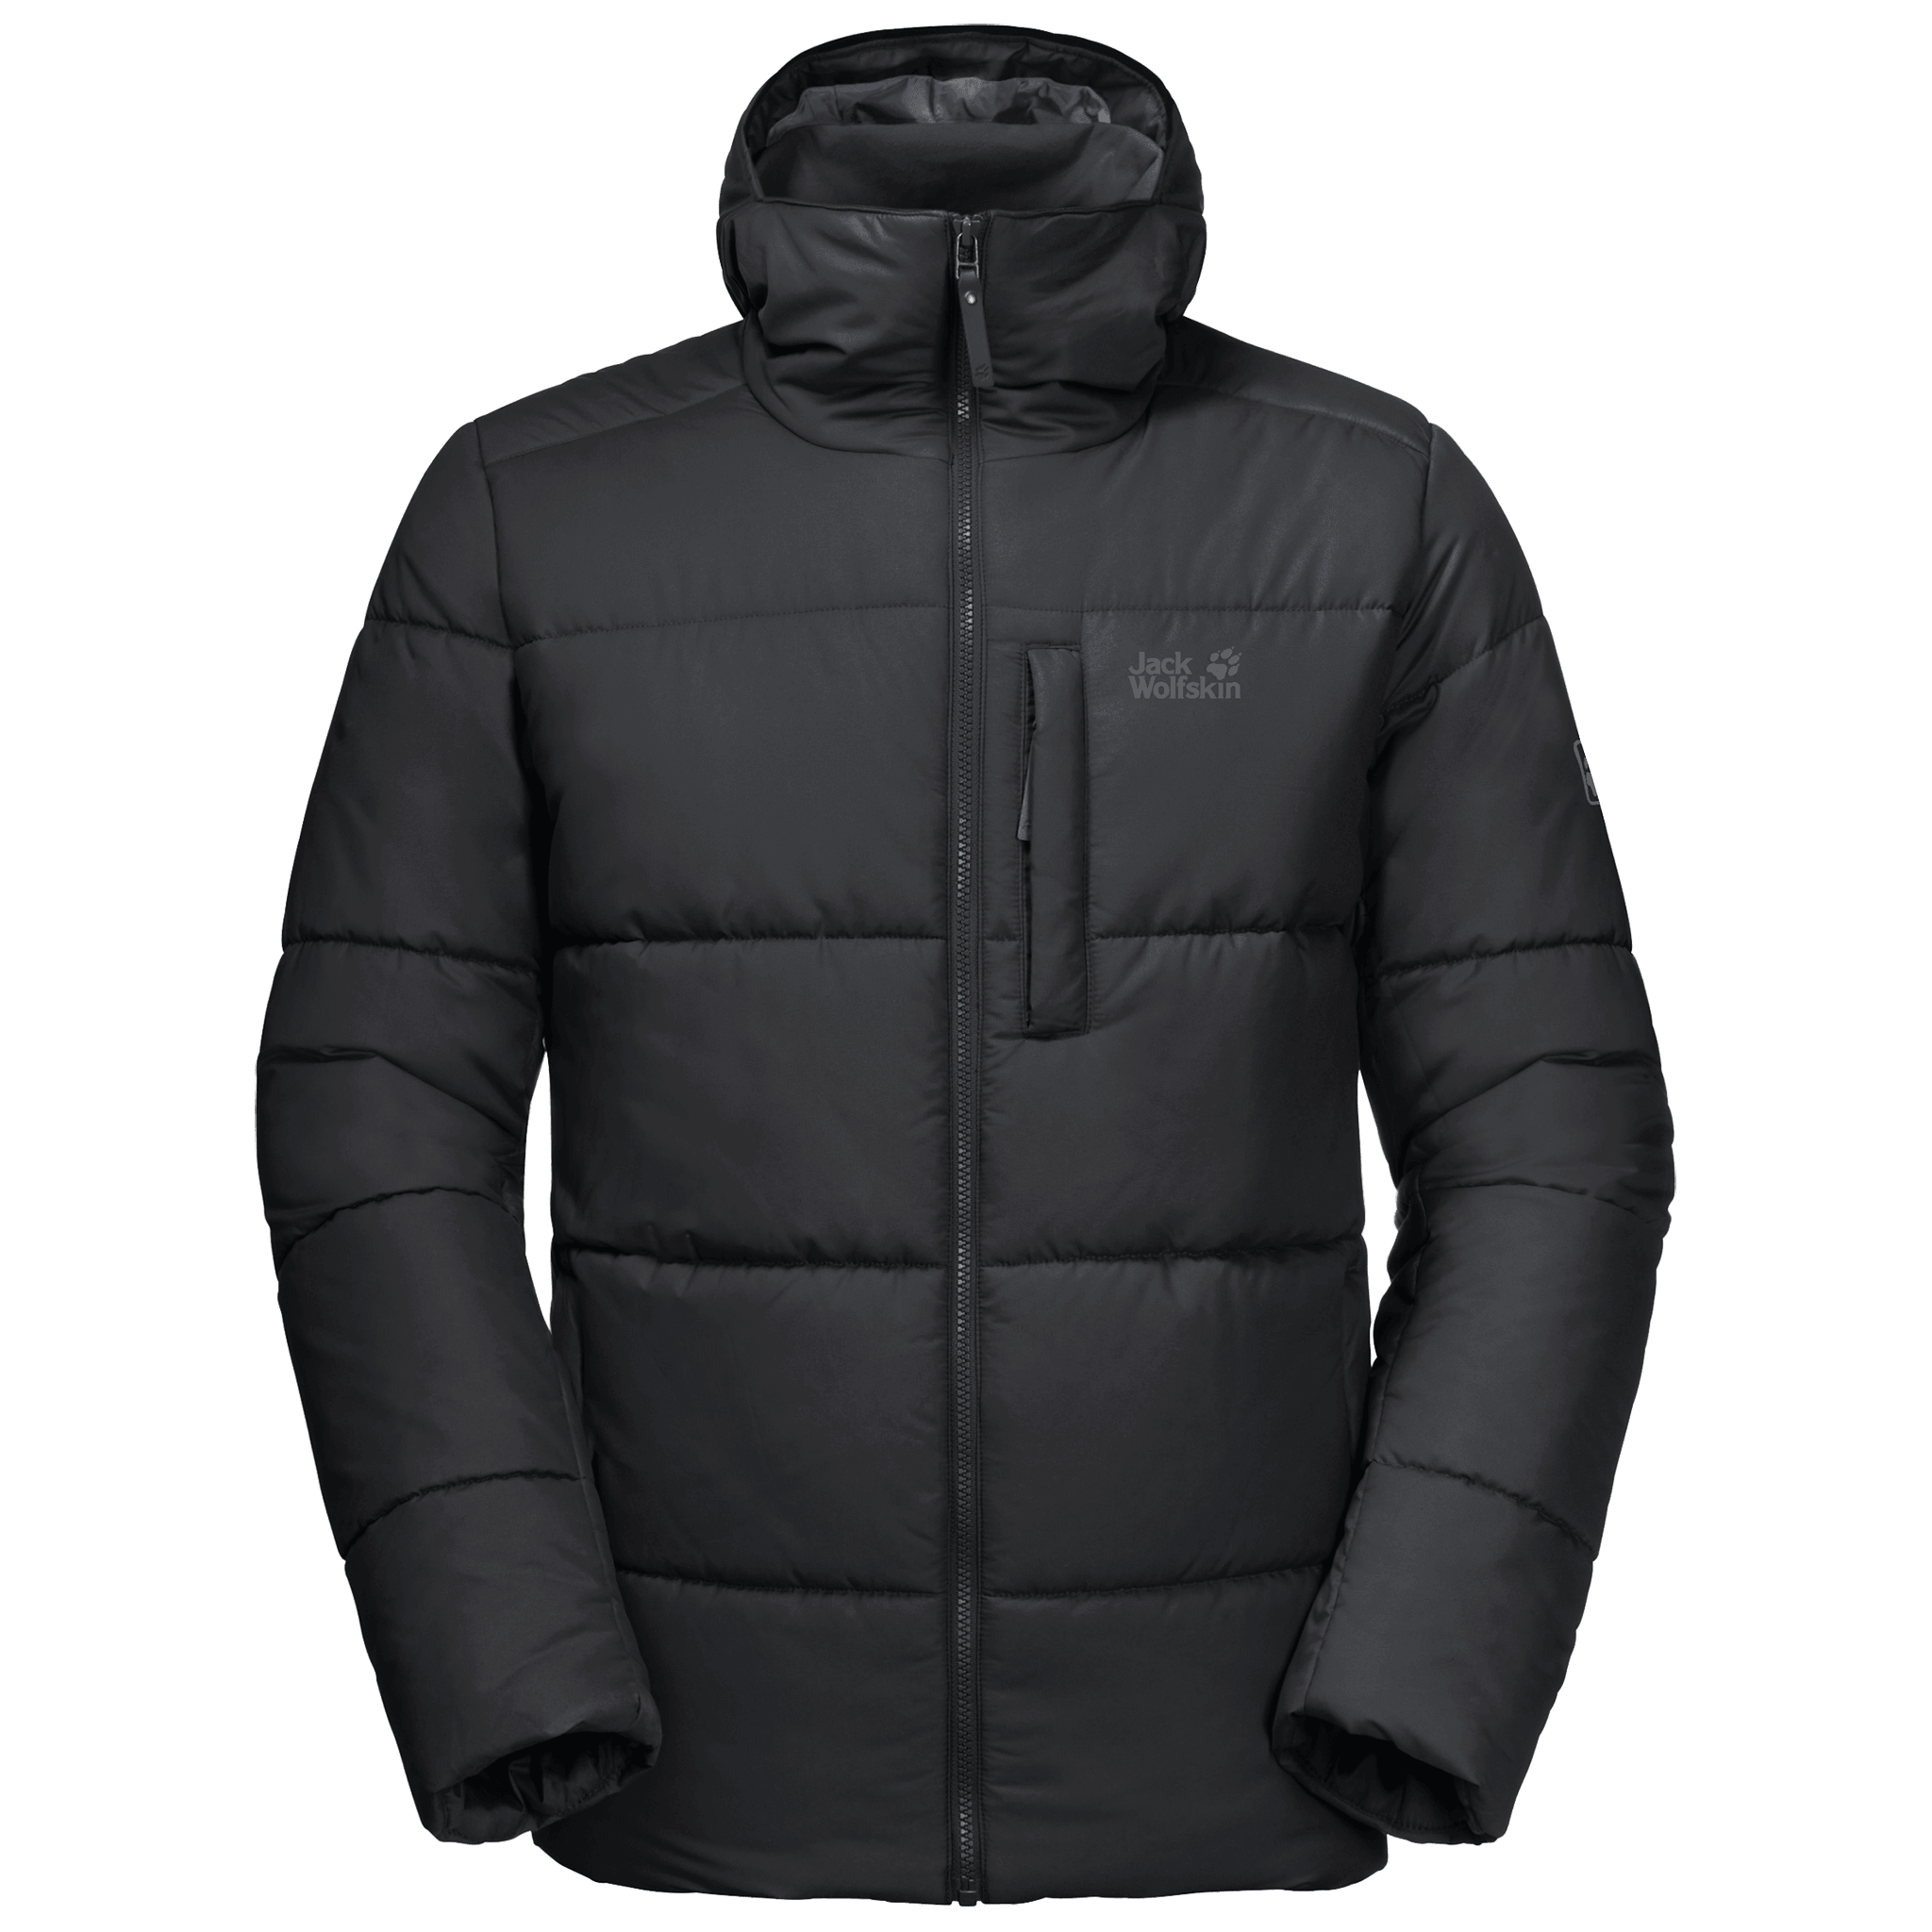 Black Windproof Insluated Jacket Men